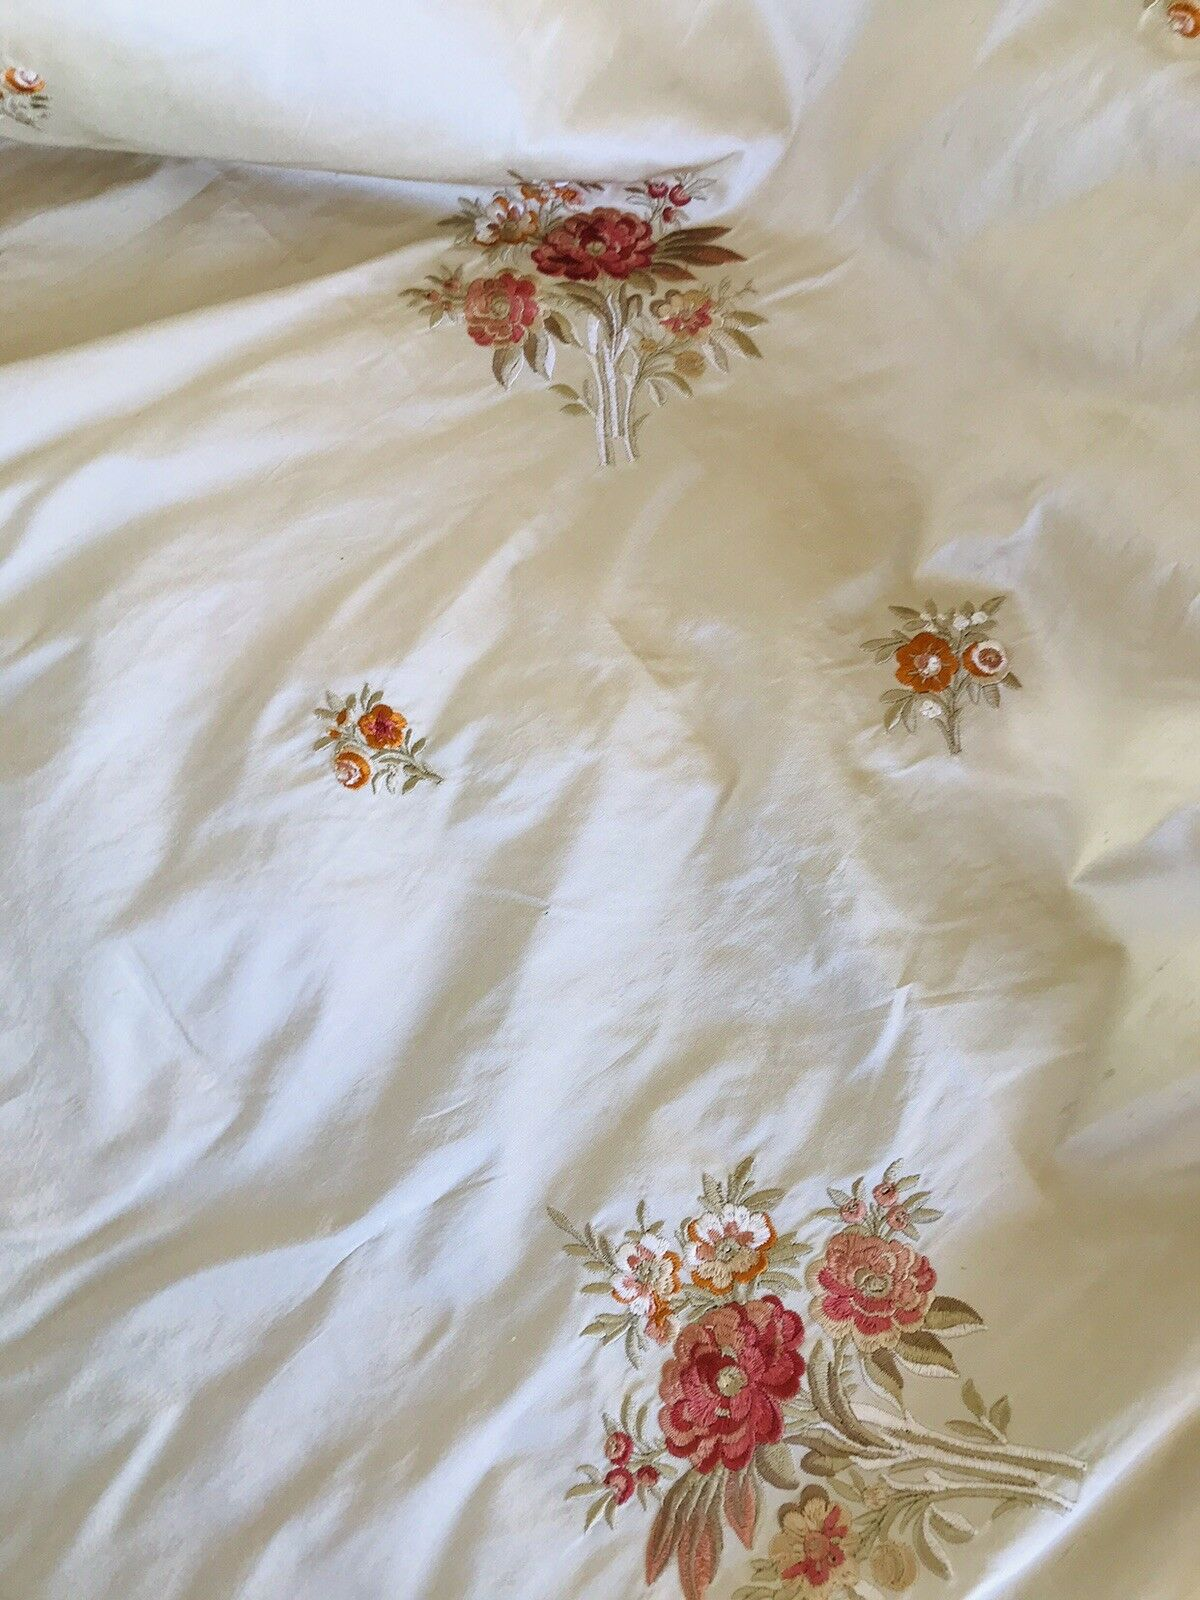 SALE 100% Silk Dupioni Embroidered Floral Fabric- Beige- Sold by the Yard